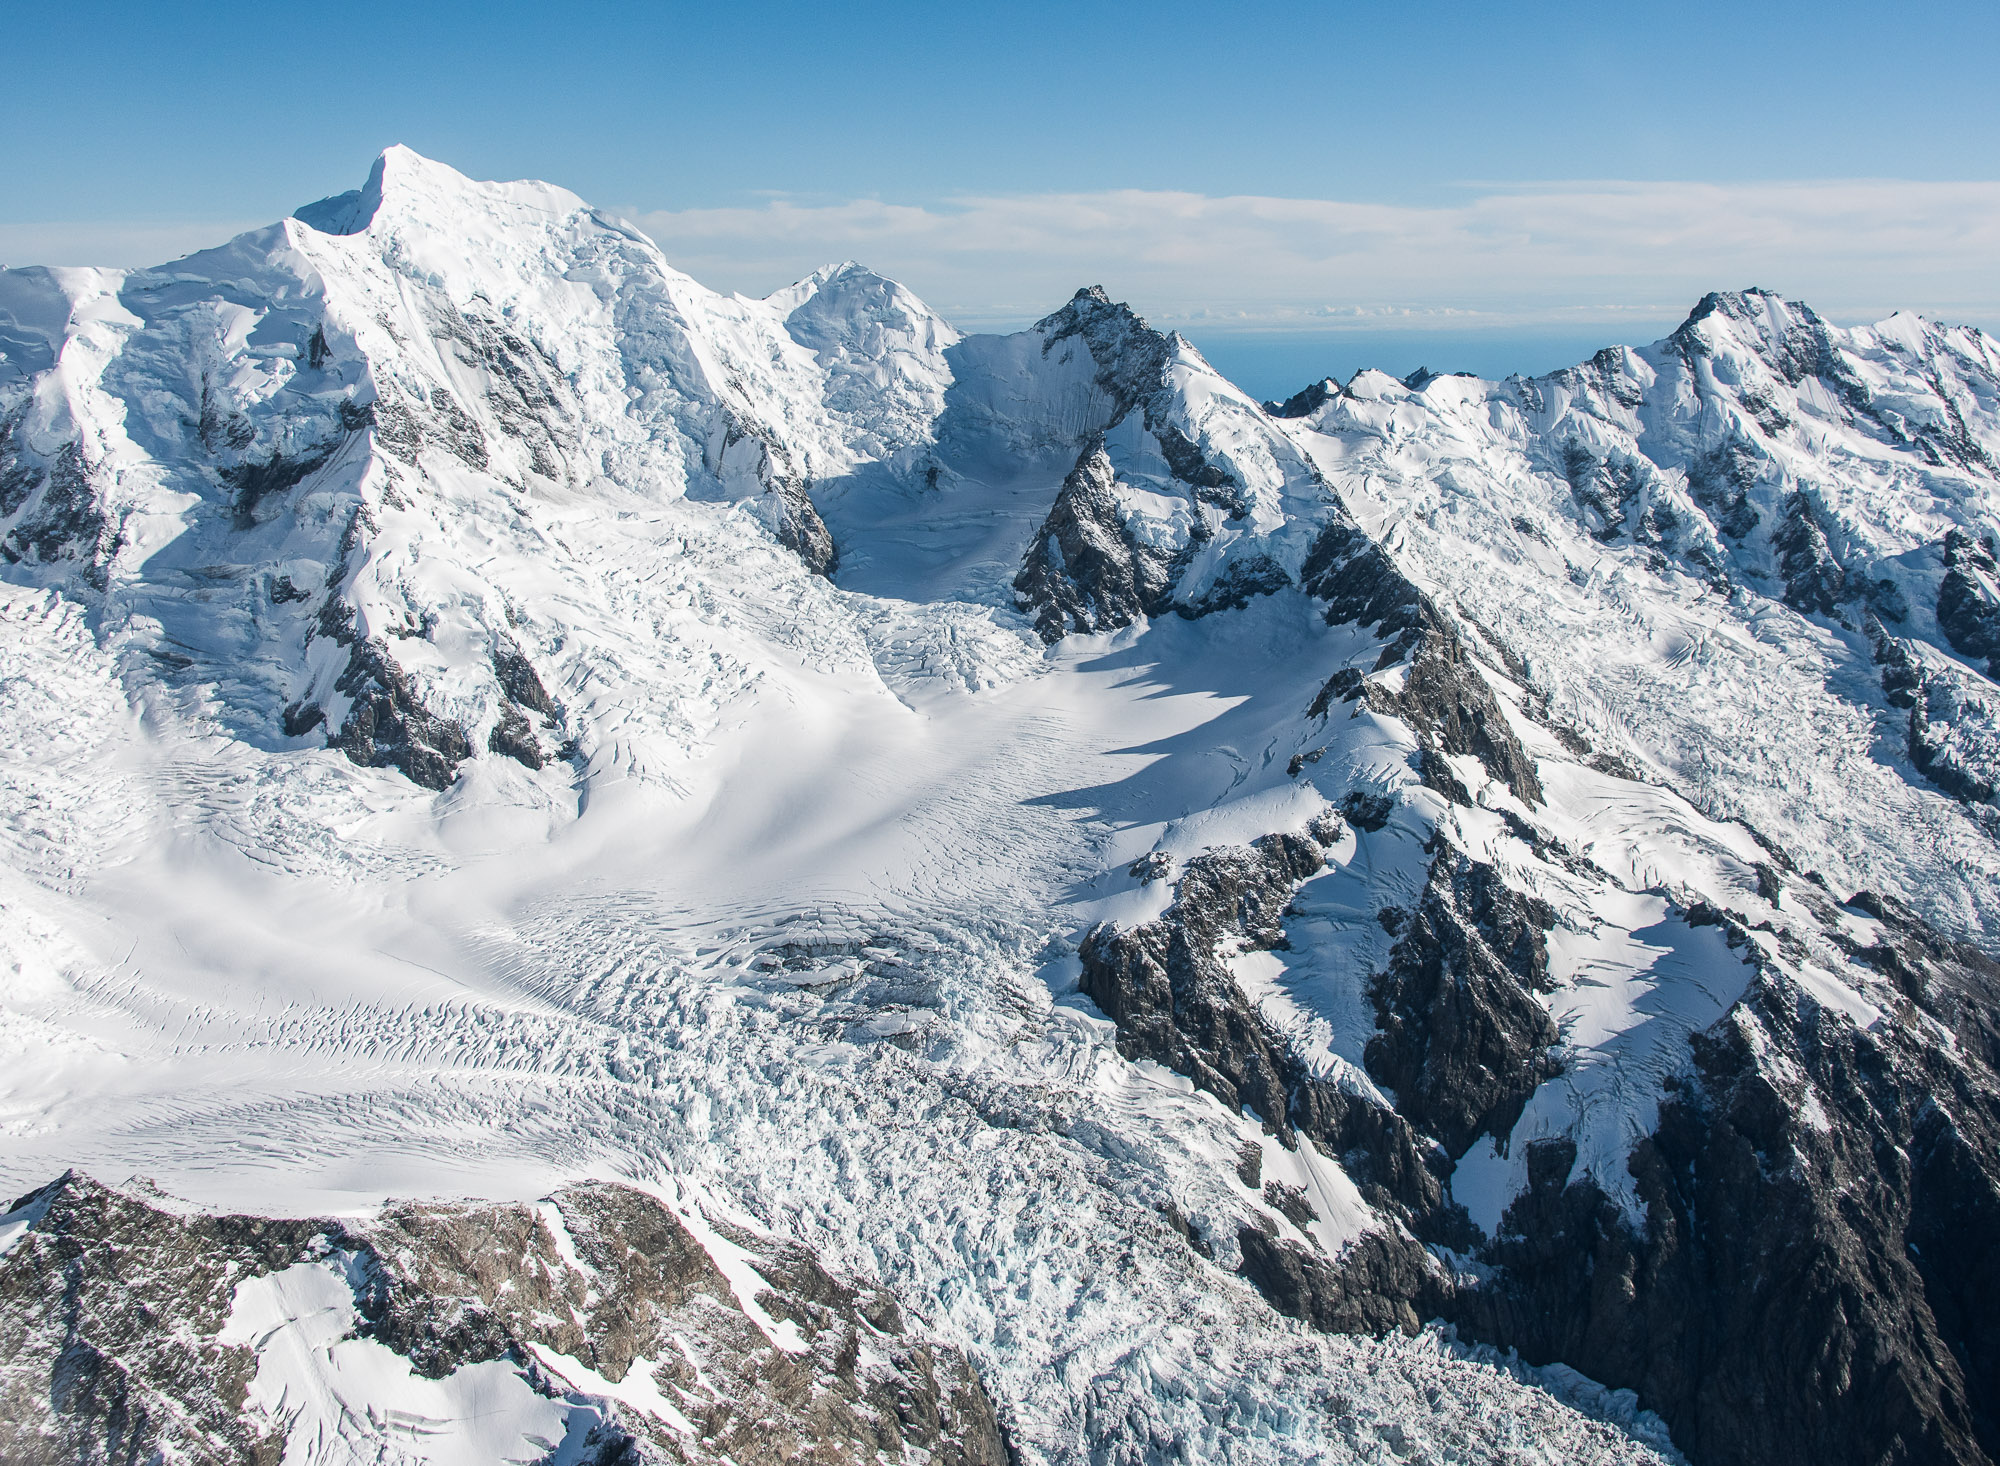 Southern Alps glacier - Aoraki-Mount Cook National Park, New Zealand